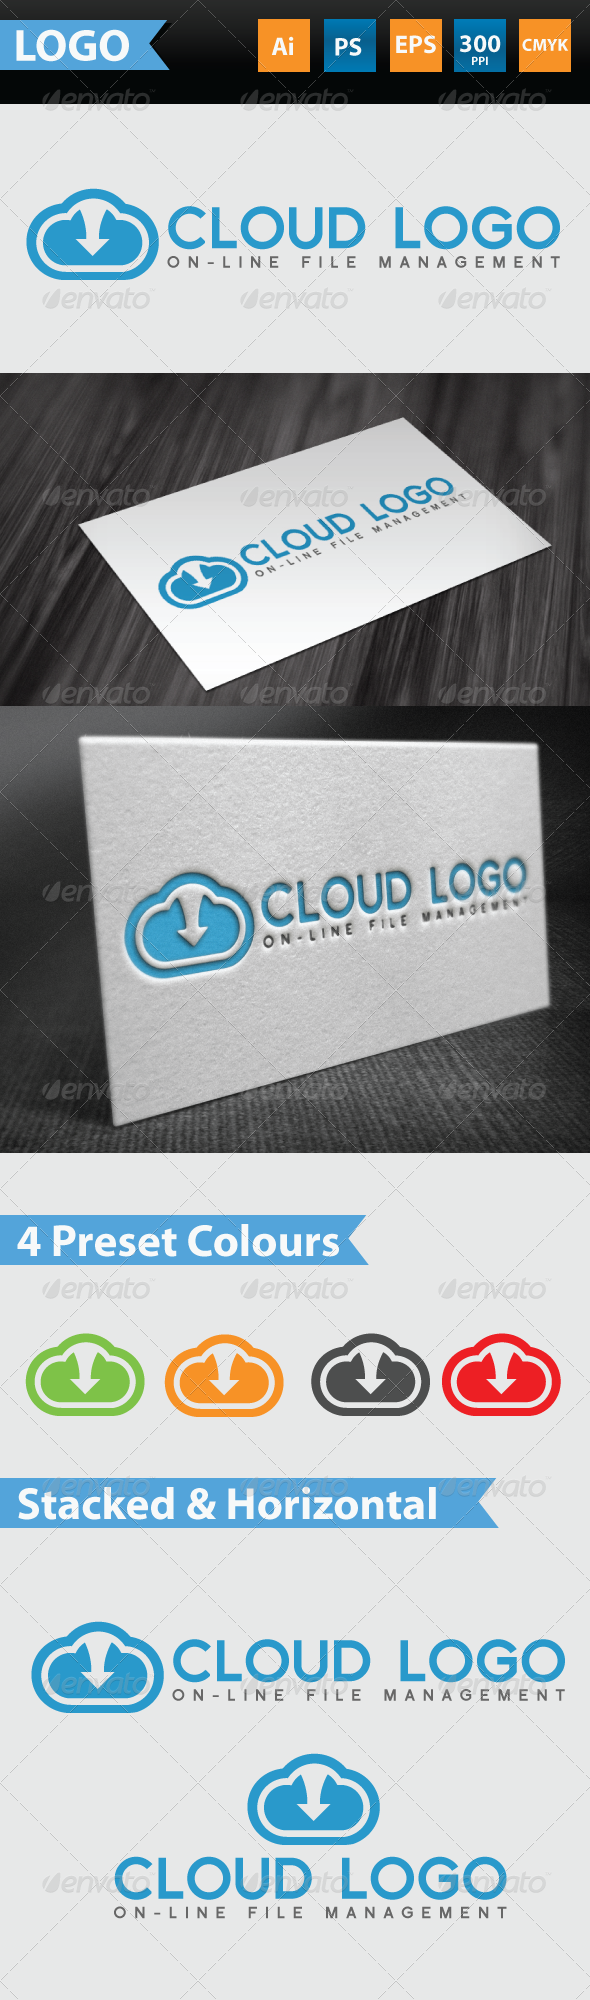 Cloud logo, on-line file management - Symbols Logo Templates